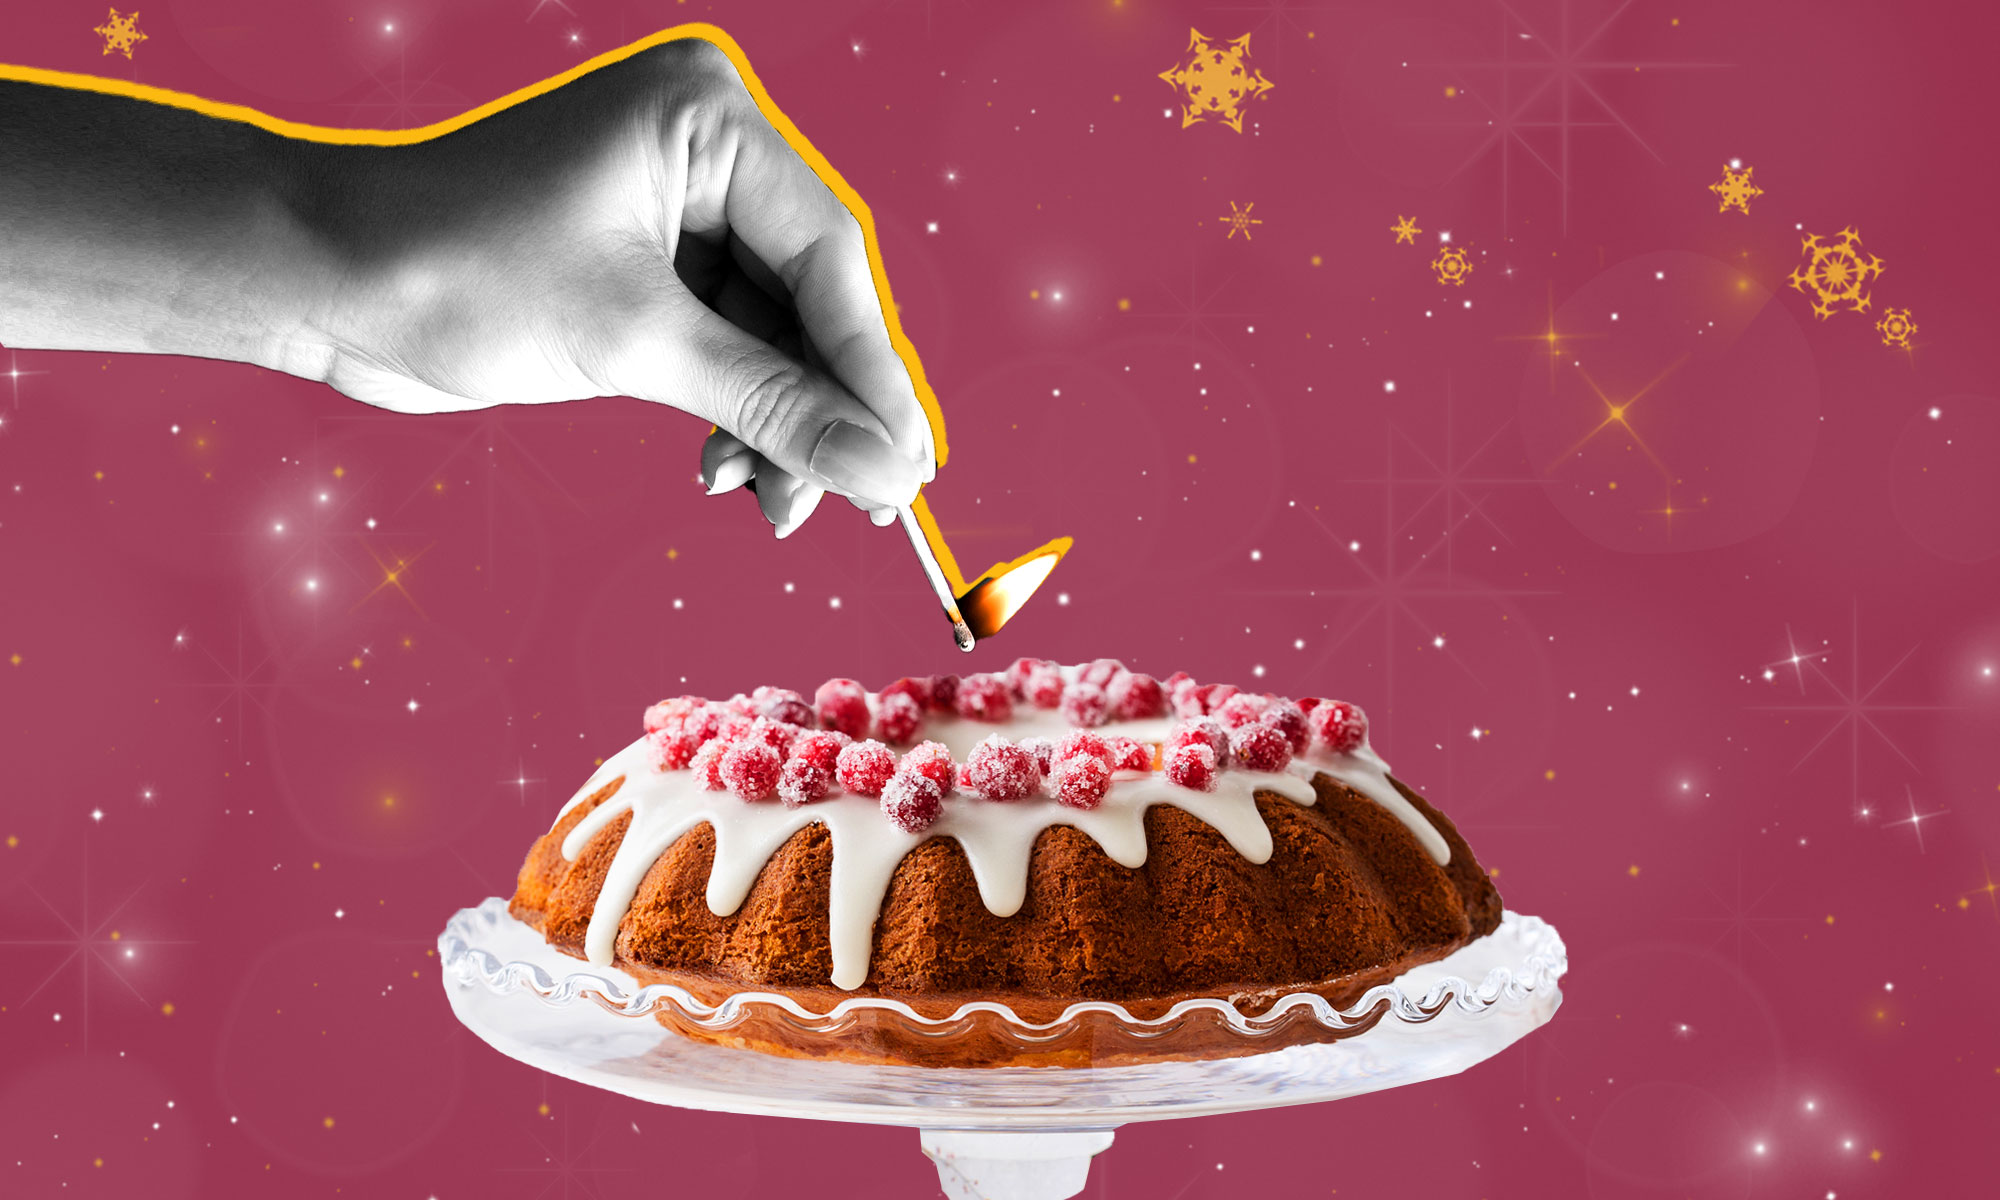 A collage showing a woman's hand holding a flaming match over a bundt cake.